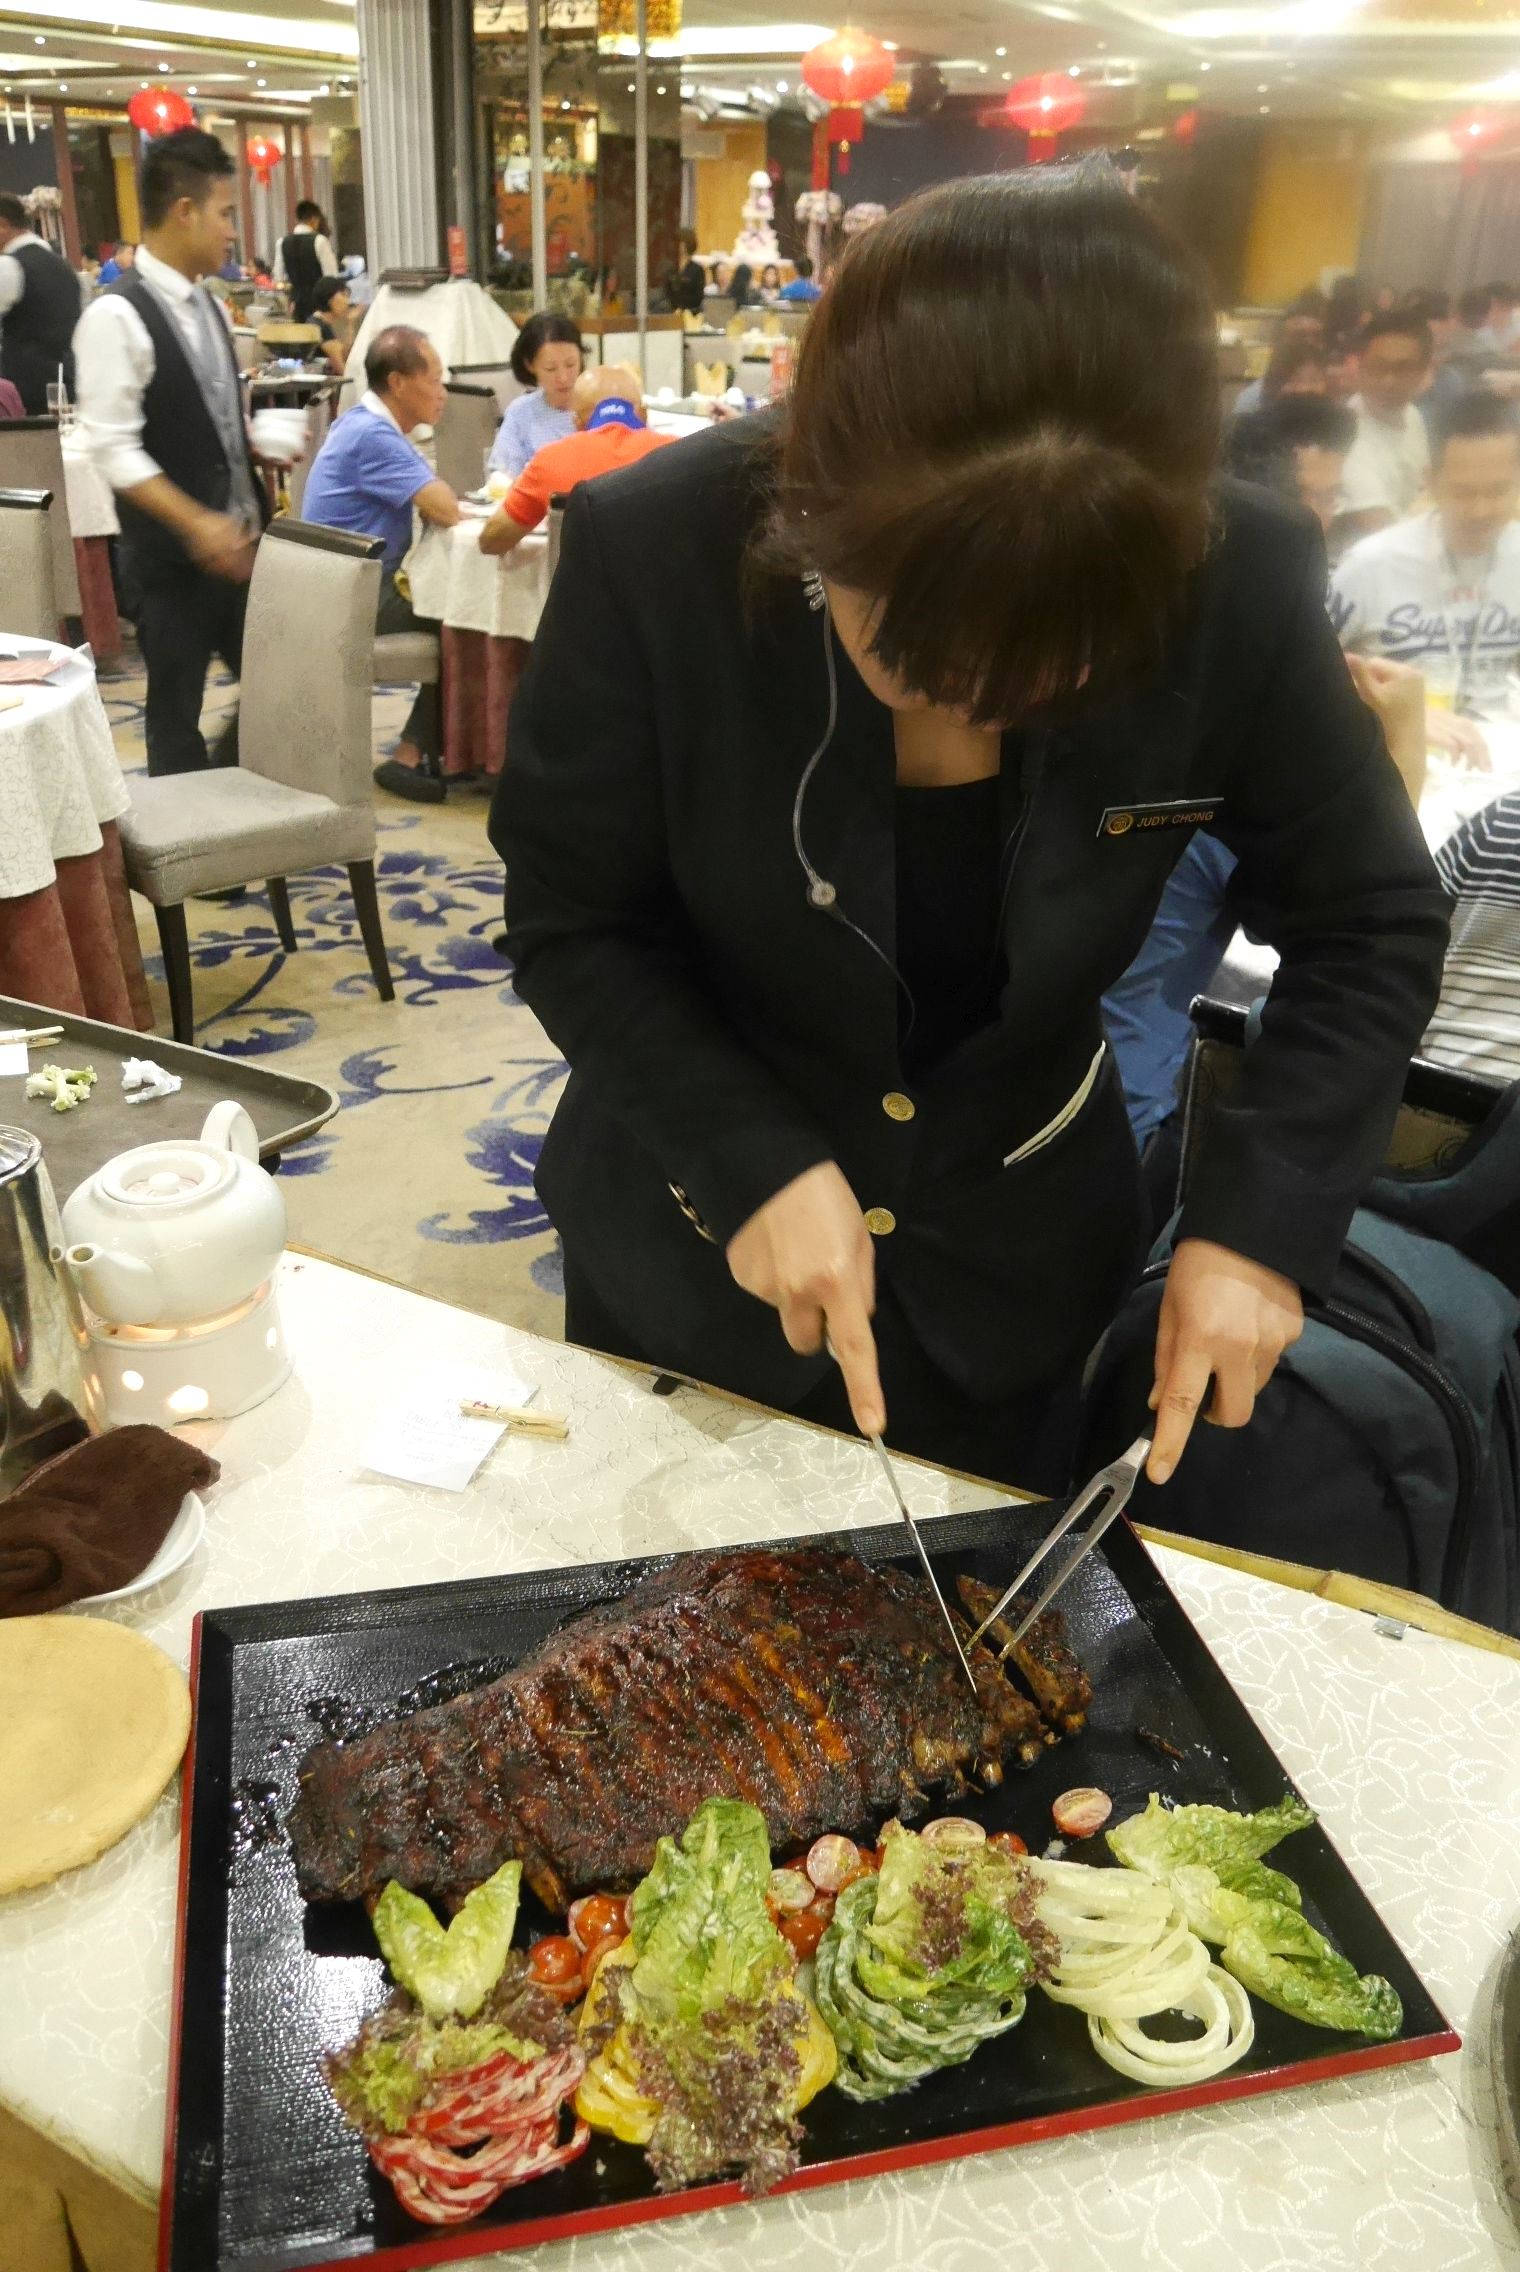 Head waitress cutting up Iberico grilled spare ribs